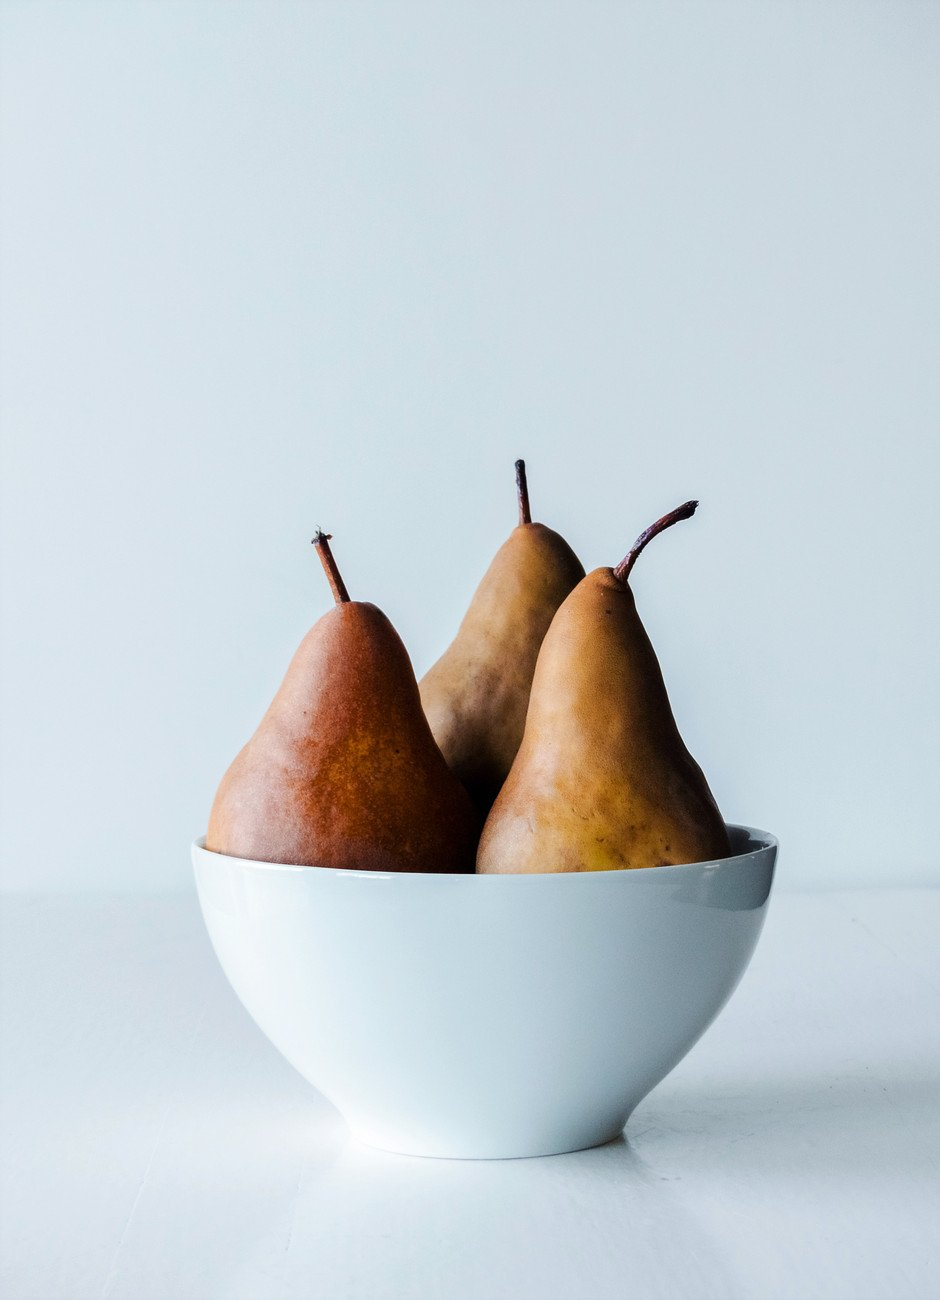 a straigh on image of three bosc pears in a white bowl against a white background.